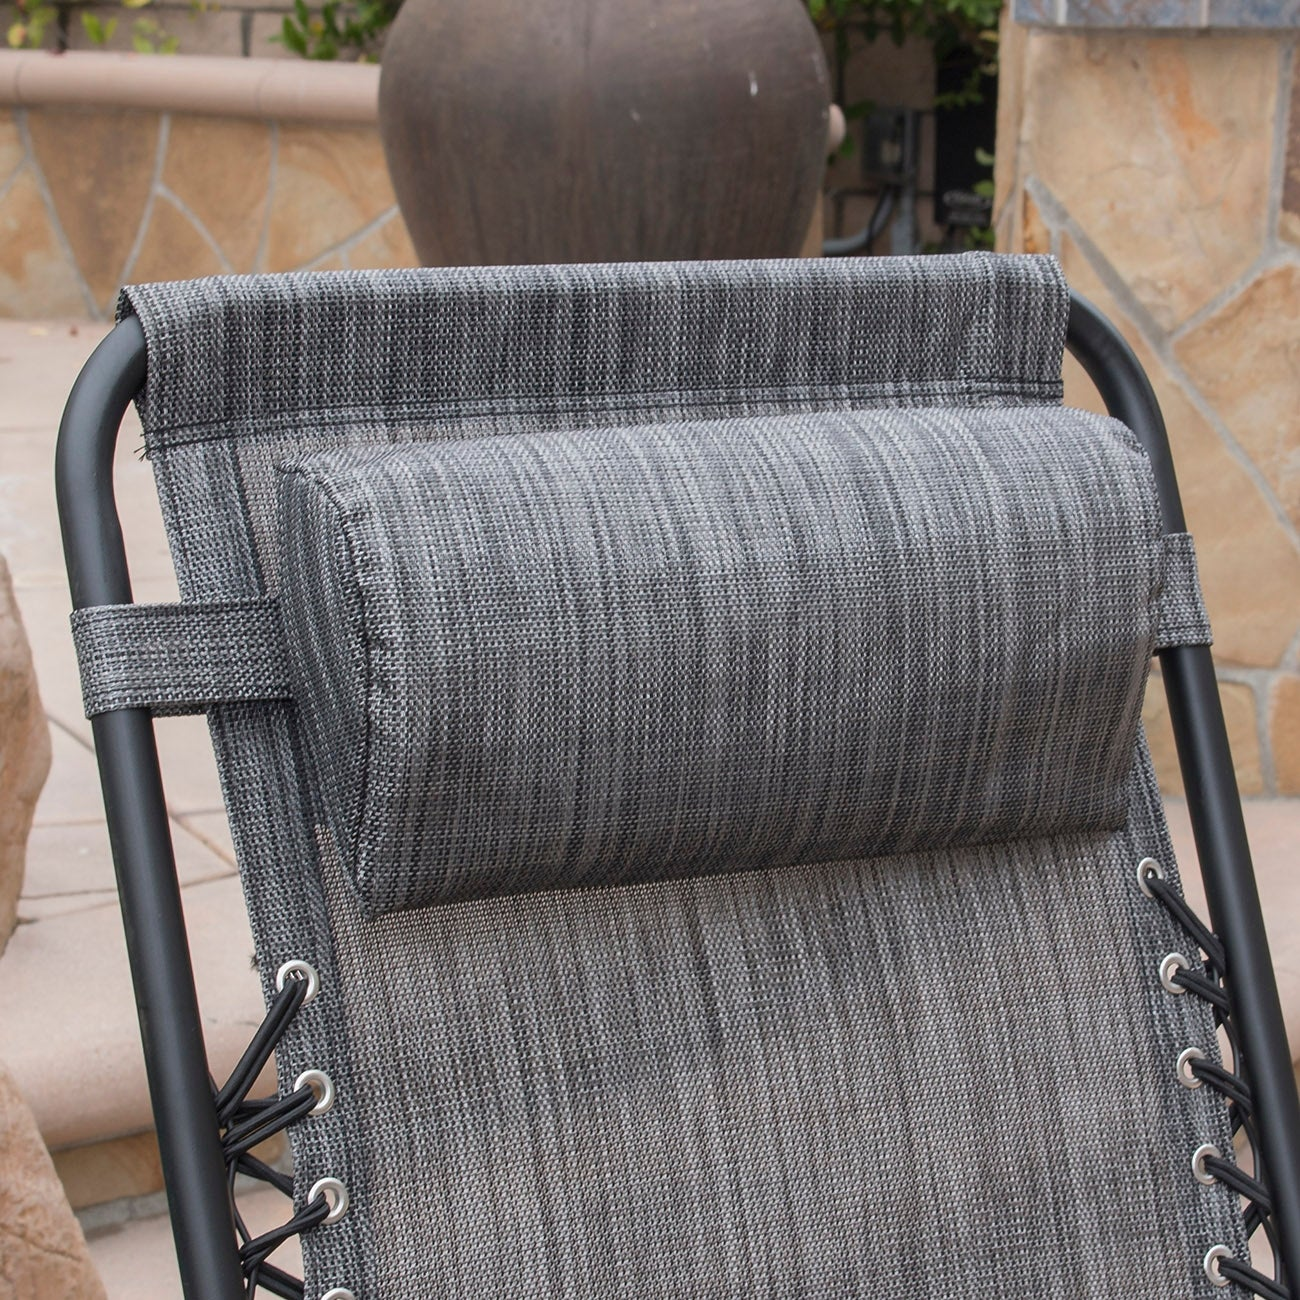 16d565016e Shop BELLEZE Zero Anti Gravity Reclining Backyard Outdoor Chairs Set of (2)  Tray Cup Slot Holder, Gray - Free Shipping Today - Overstock - 15874197